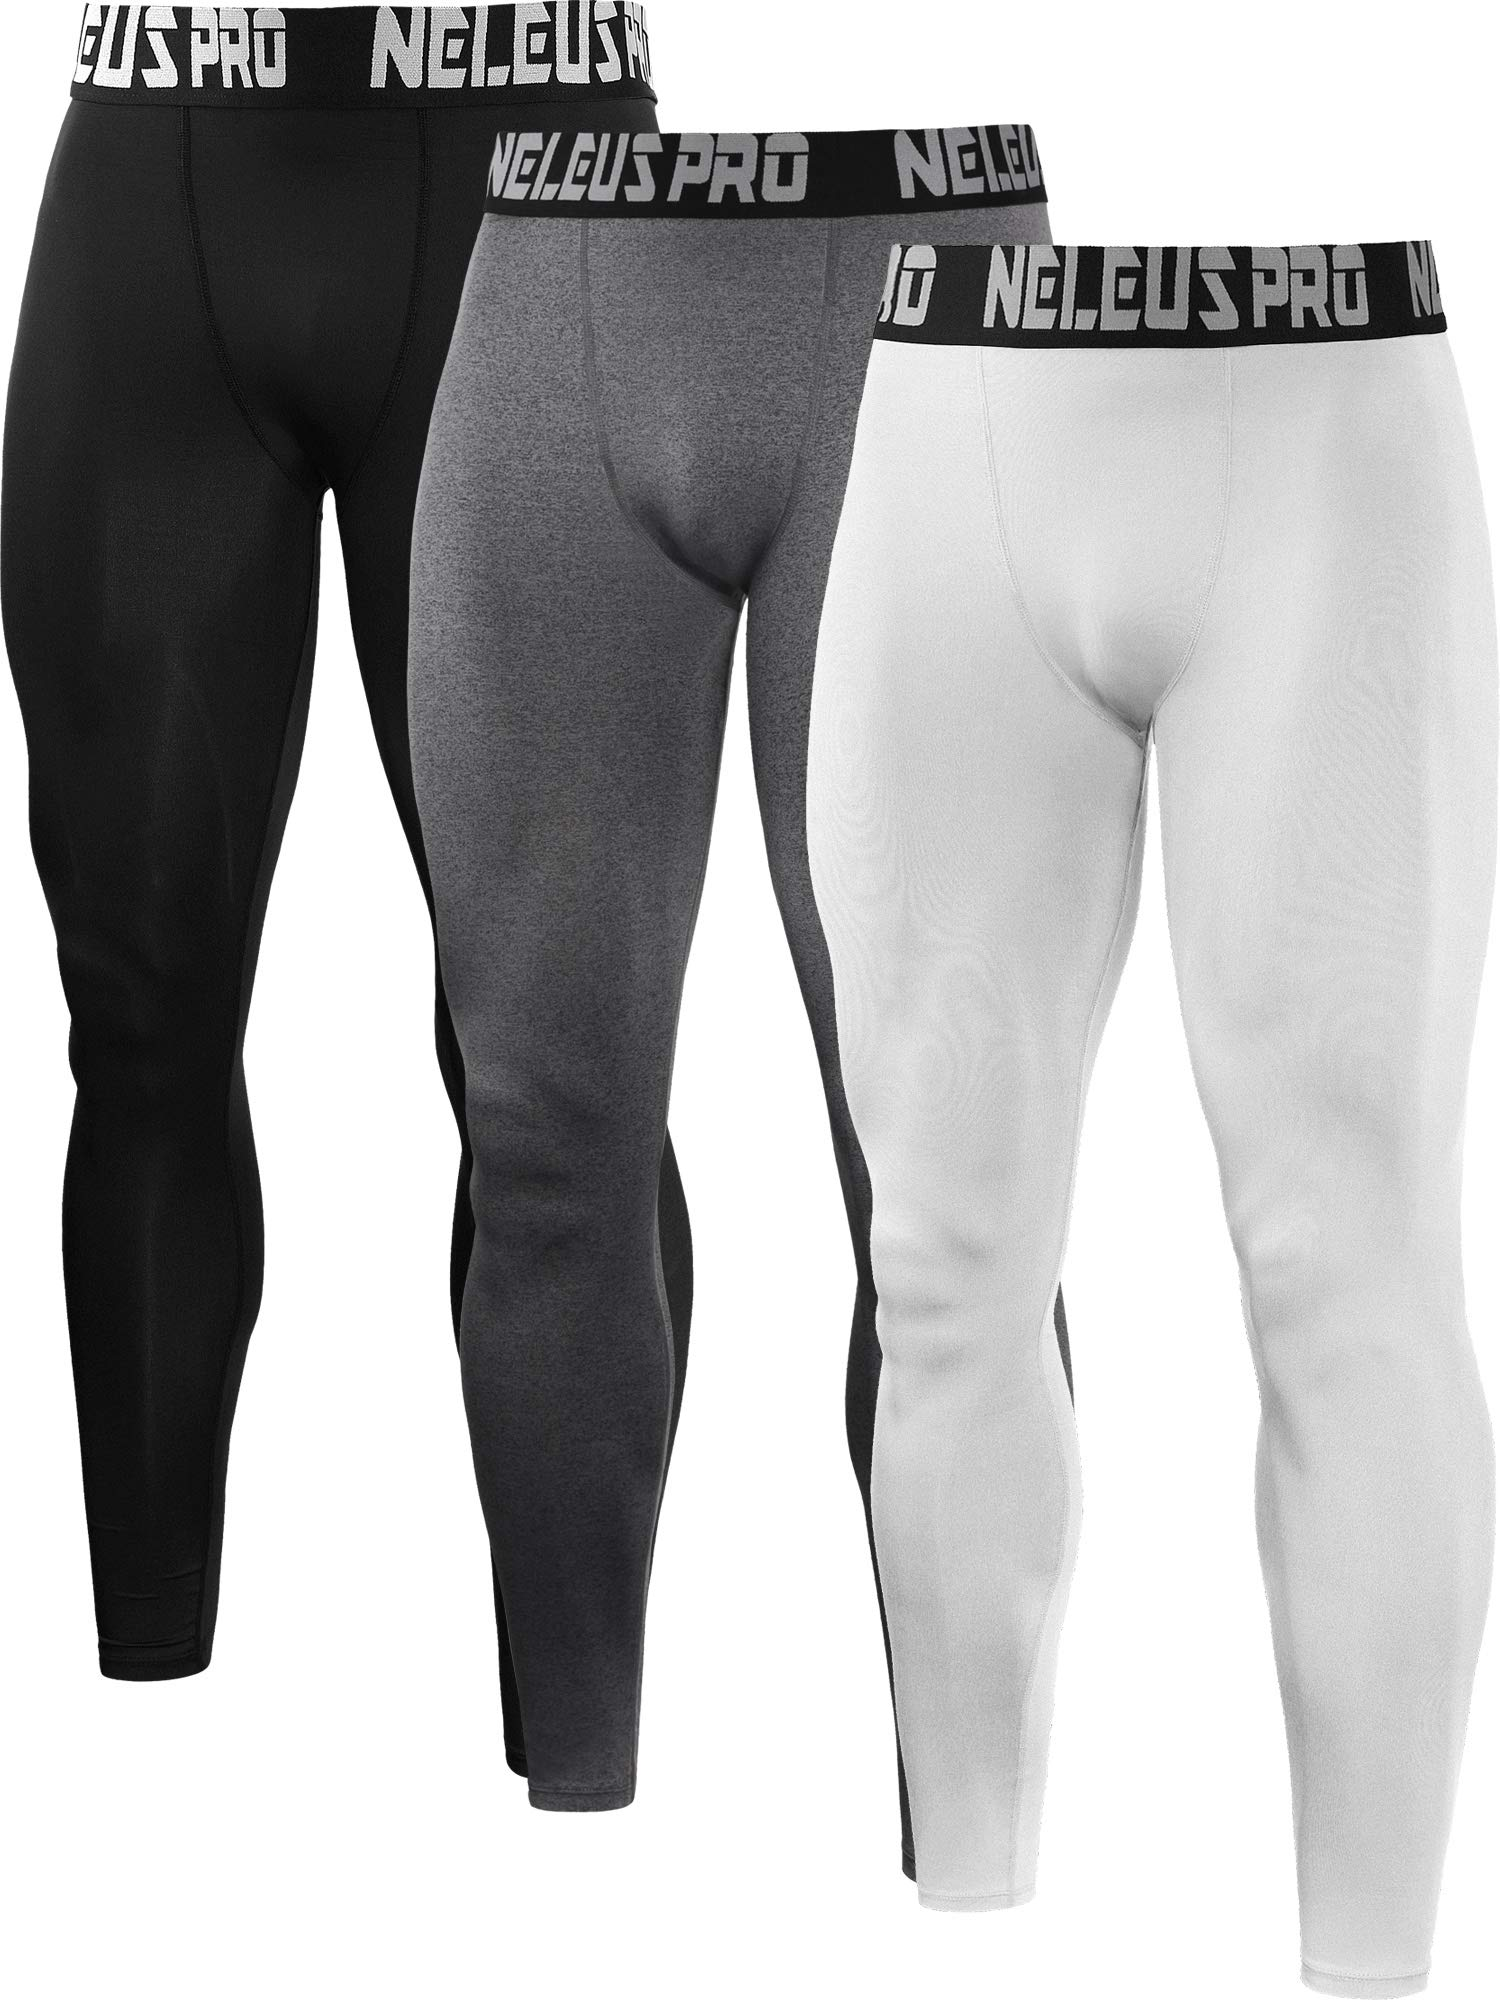 52aff9b808f Neleus Men s 2 Pack Compression Tights Sport Running Leggings Pants product  image